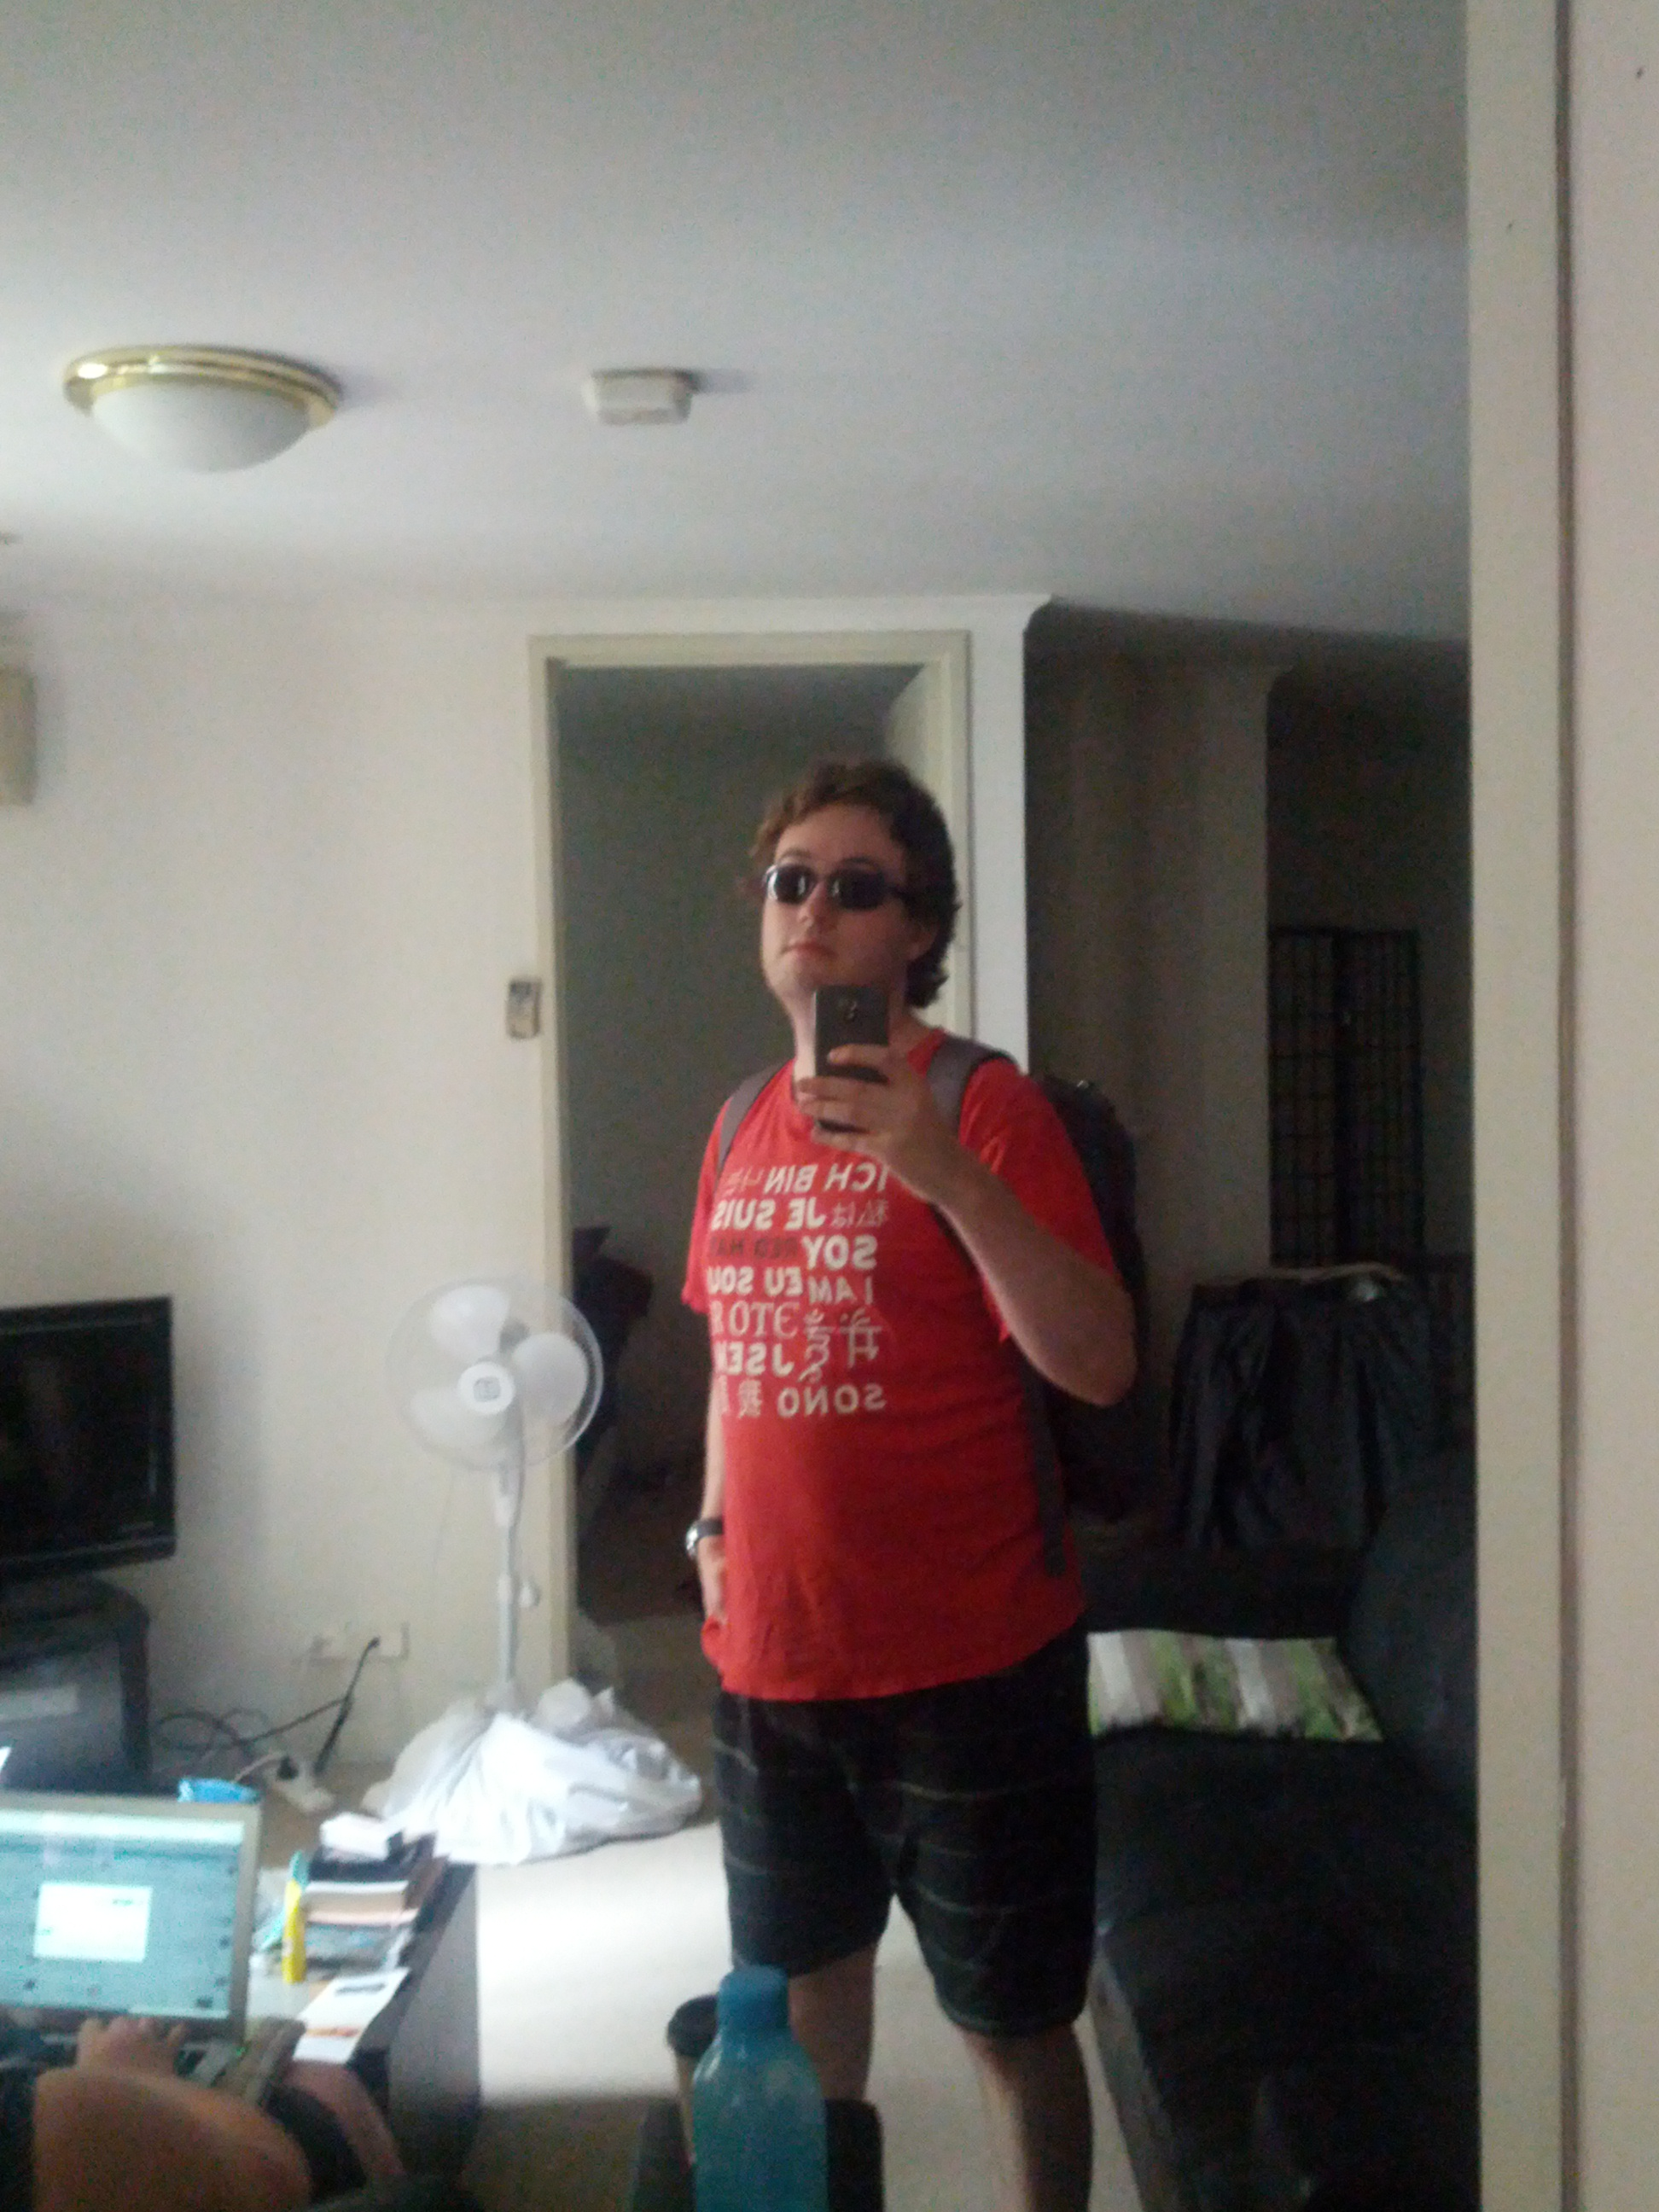 Full of optimism, I set forth from my apartment with my trust RedHat t-shirt to bring geek culture to the bush.